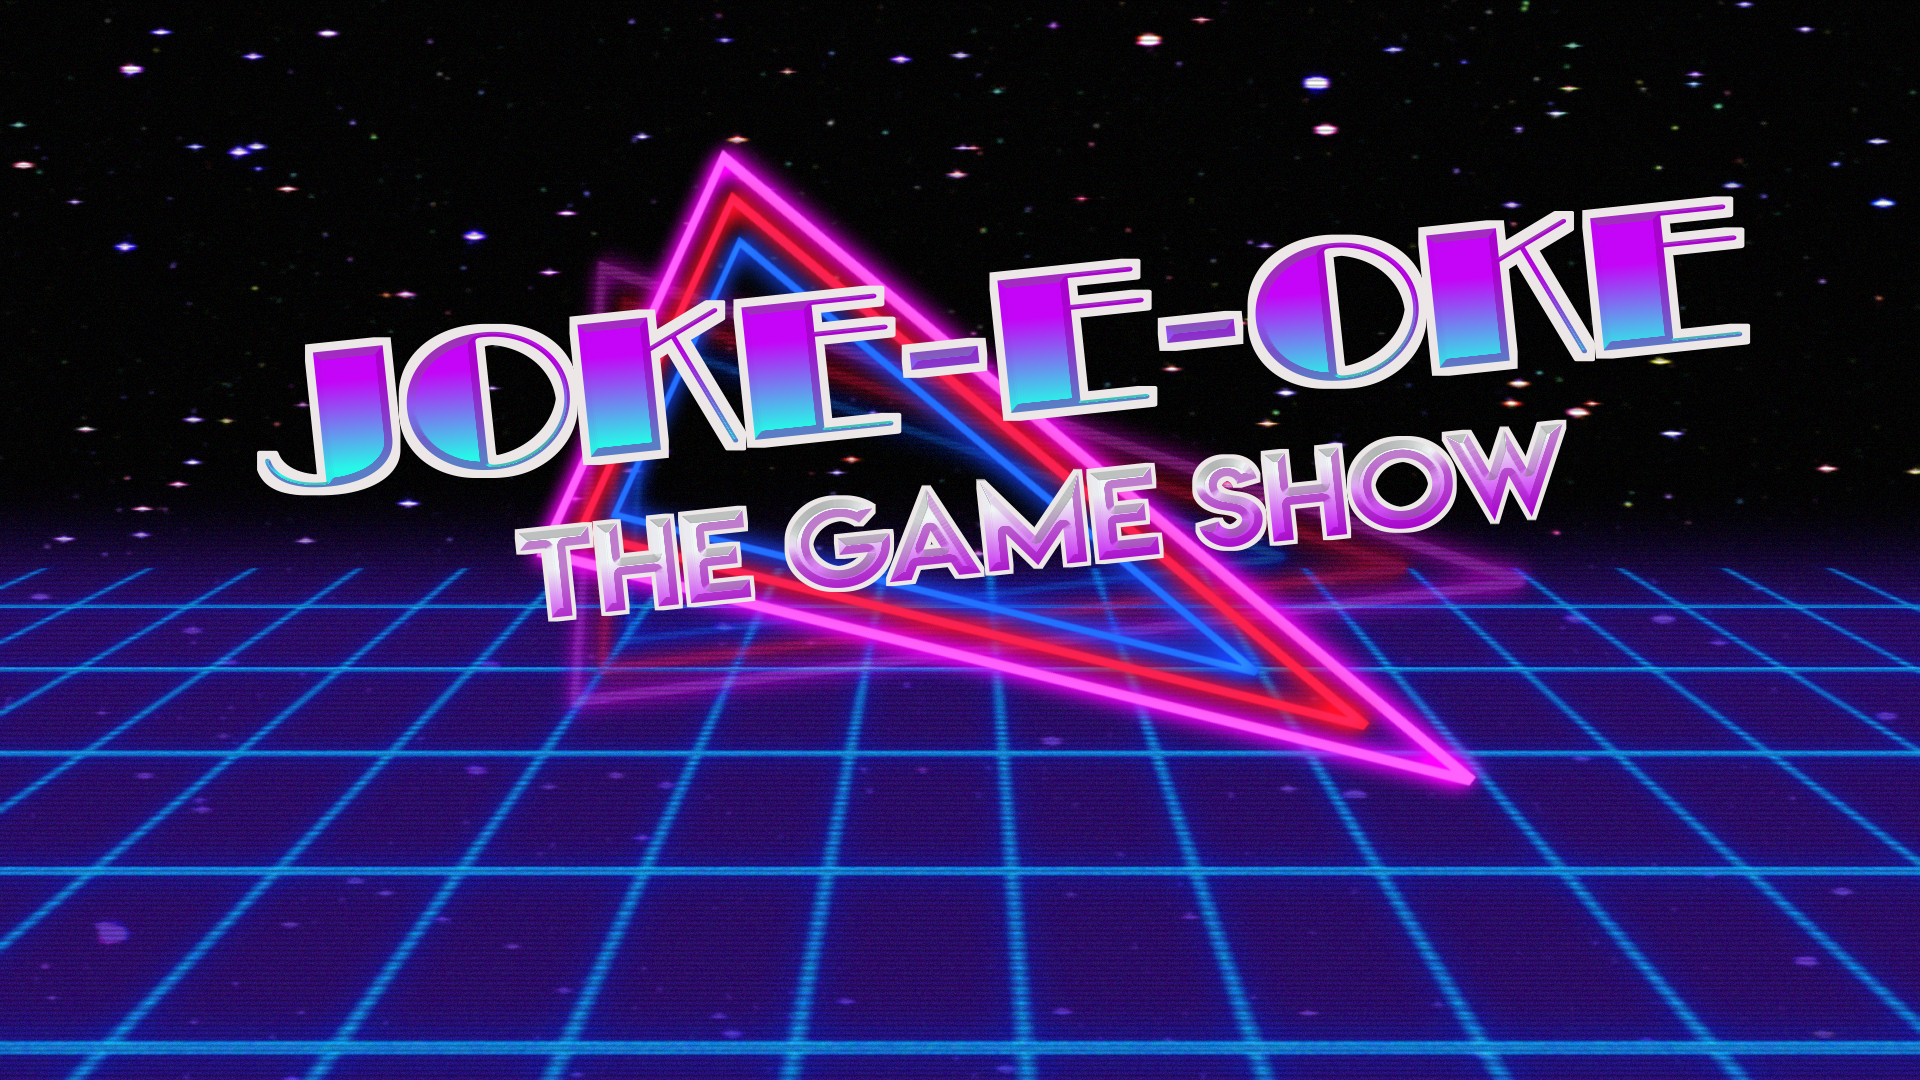 Joke-e-oke-The Standup Karaoke Gameshow